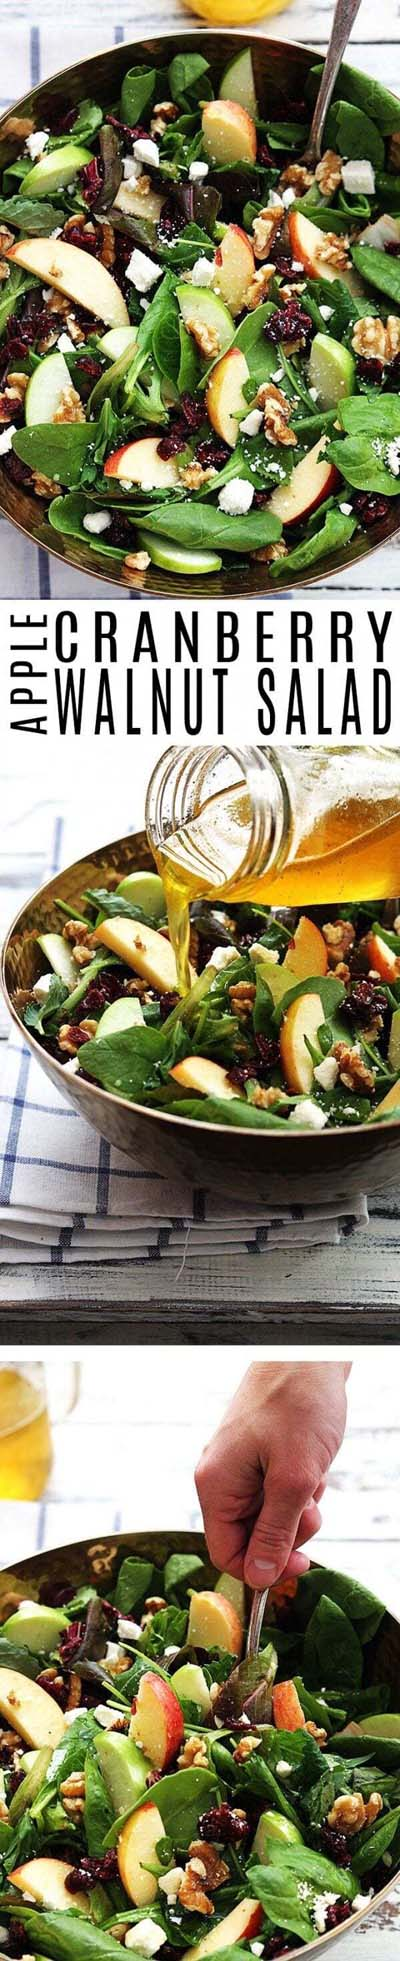 Healthy salad recipes: Apple Cranberry Walnut Salad